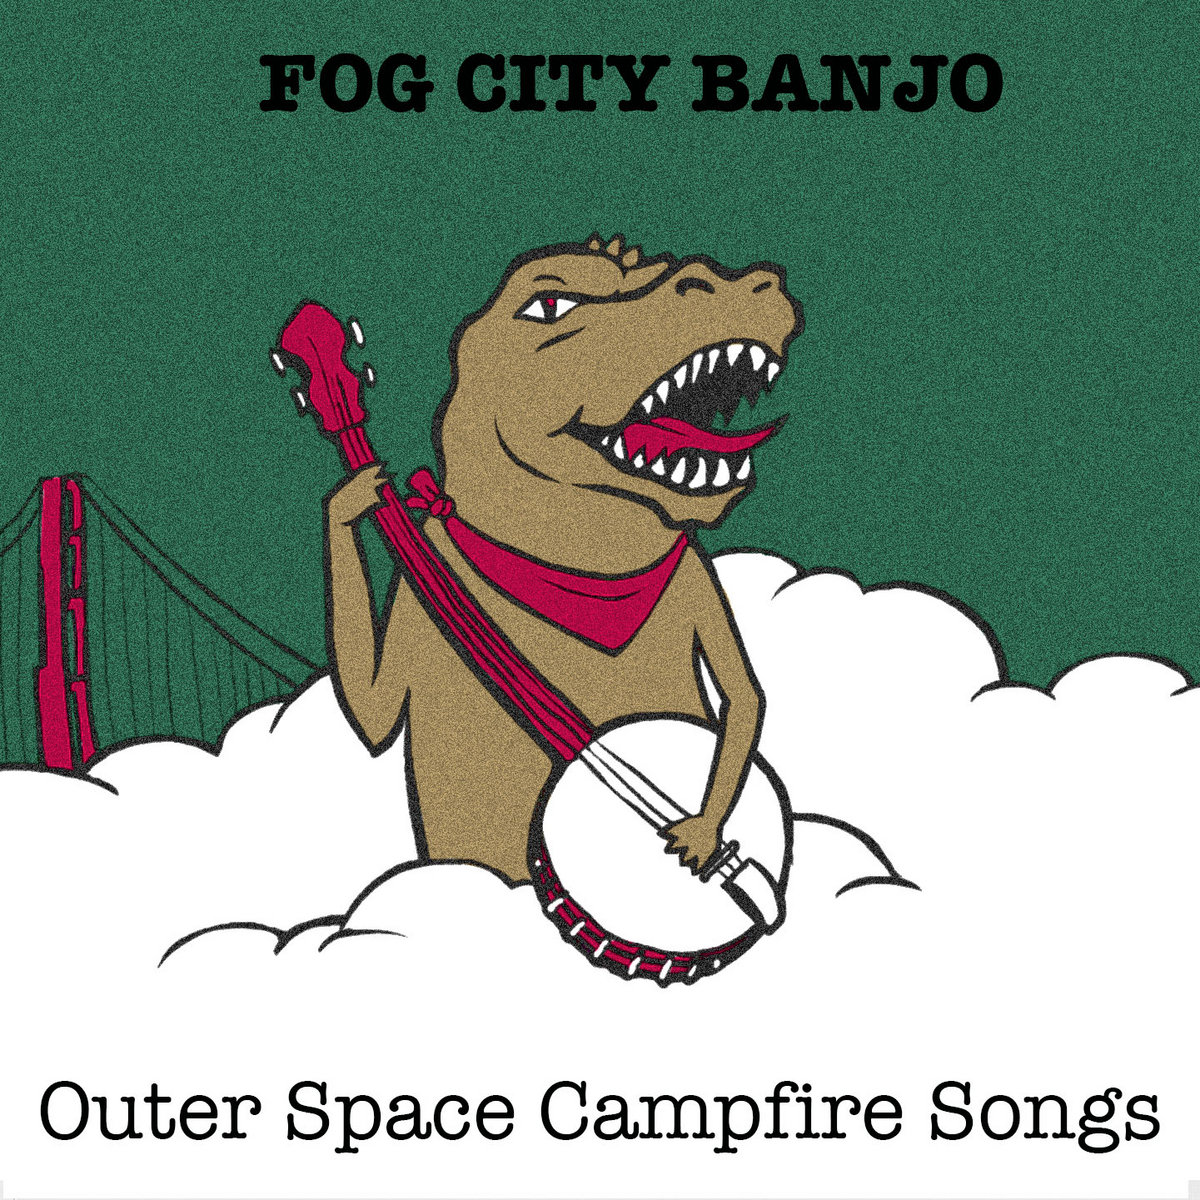 Stephen Hawking's Time Travel Party Song | Fog City Banjo